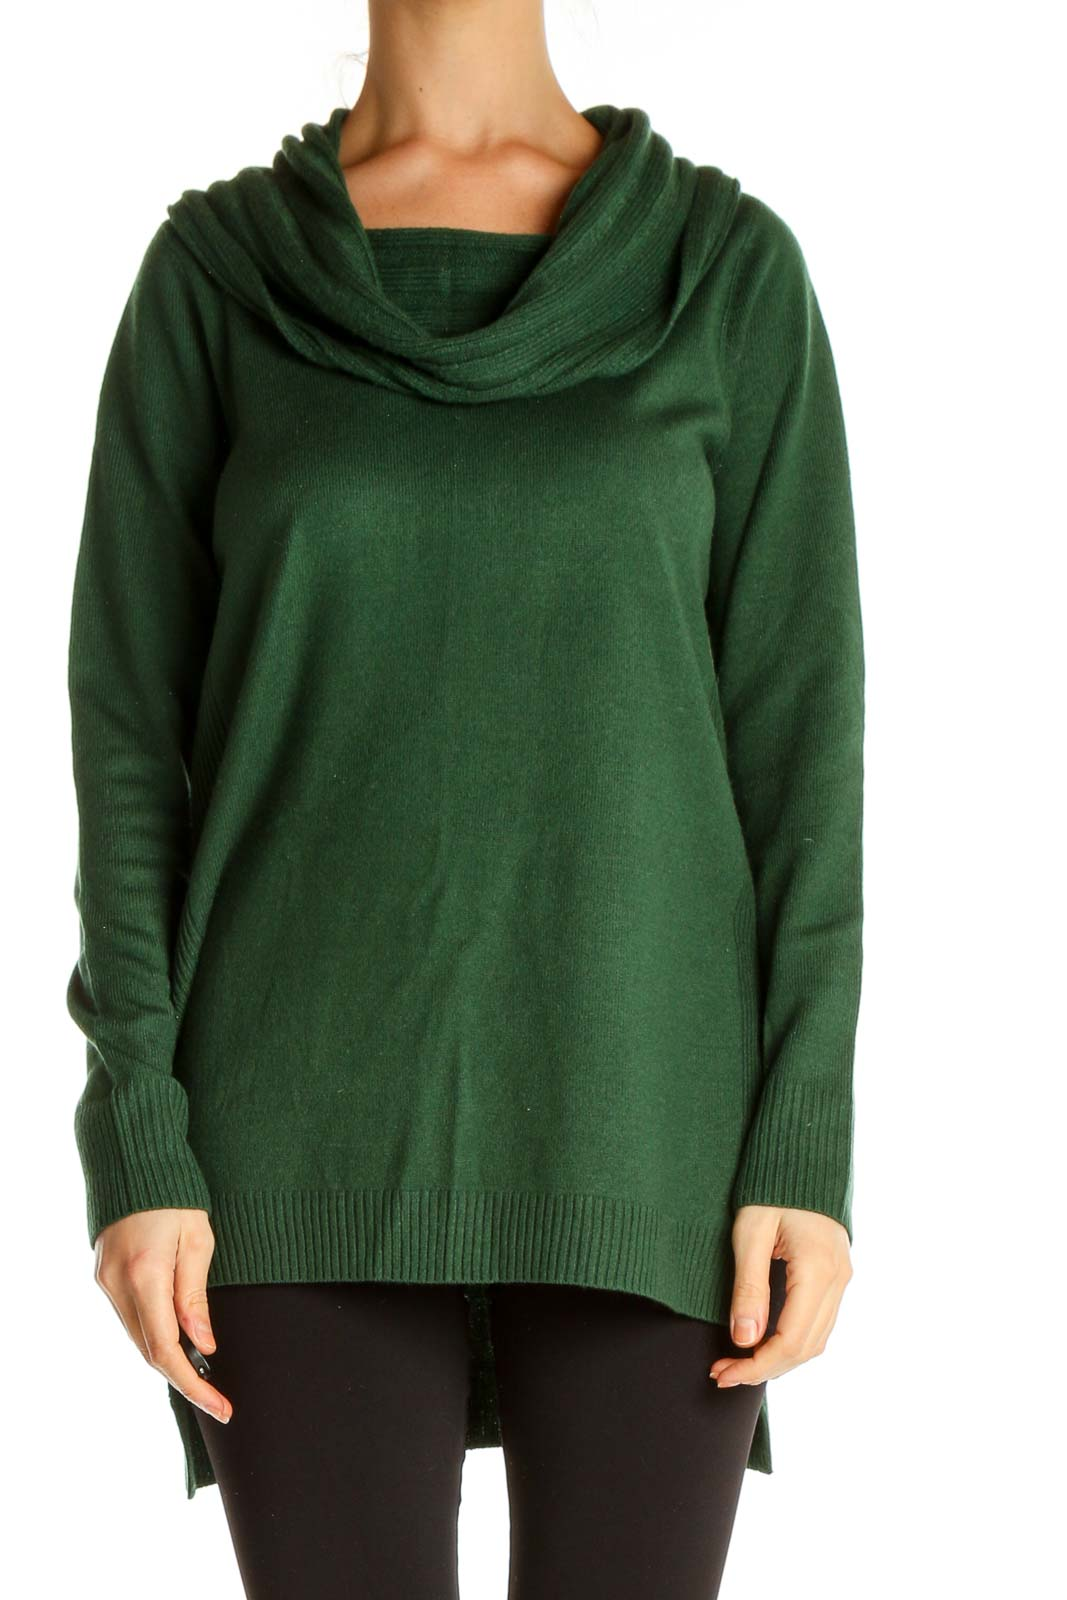 Green Solid Classic Sweater Front